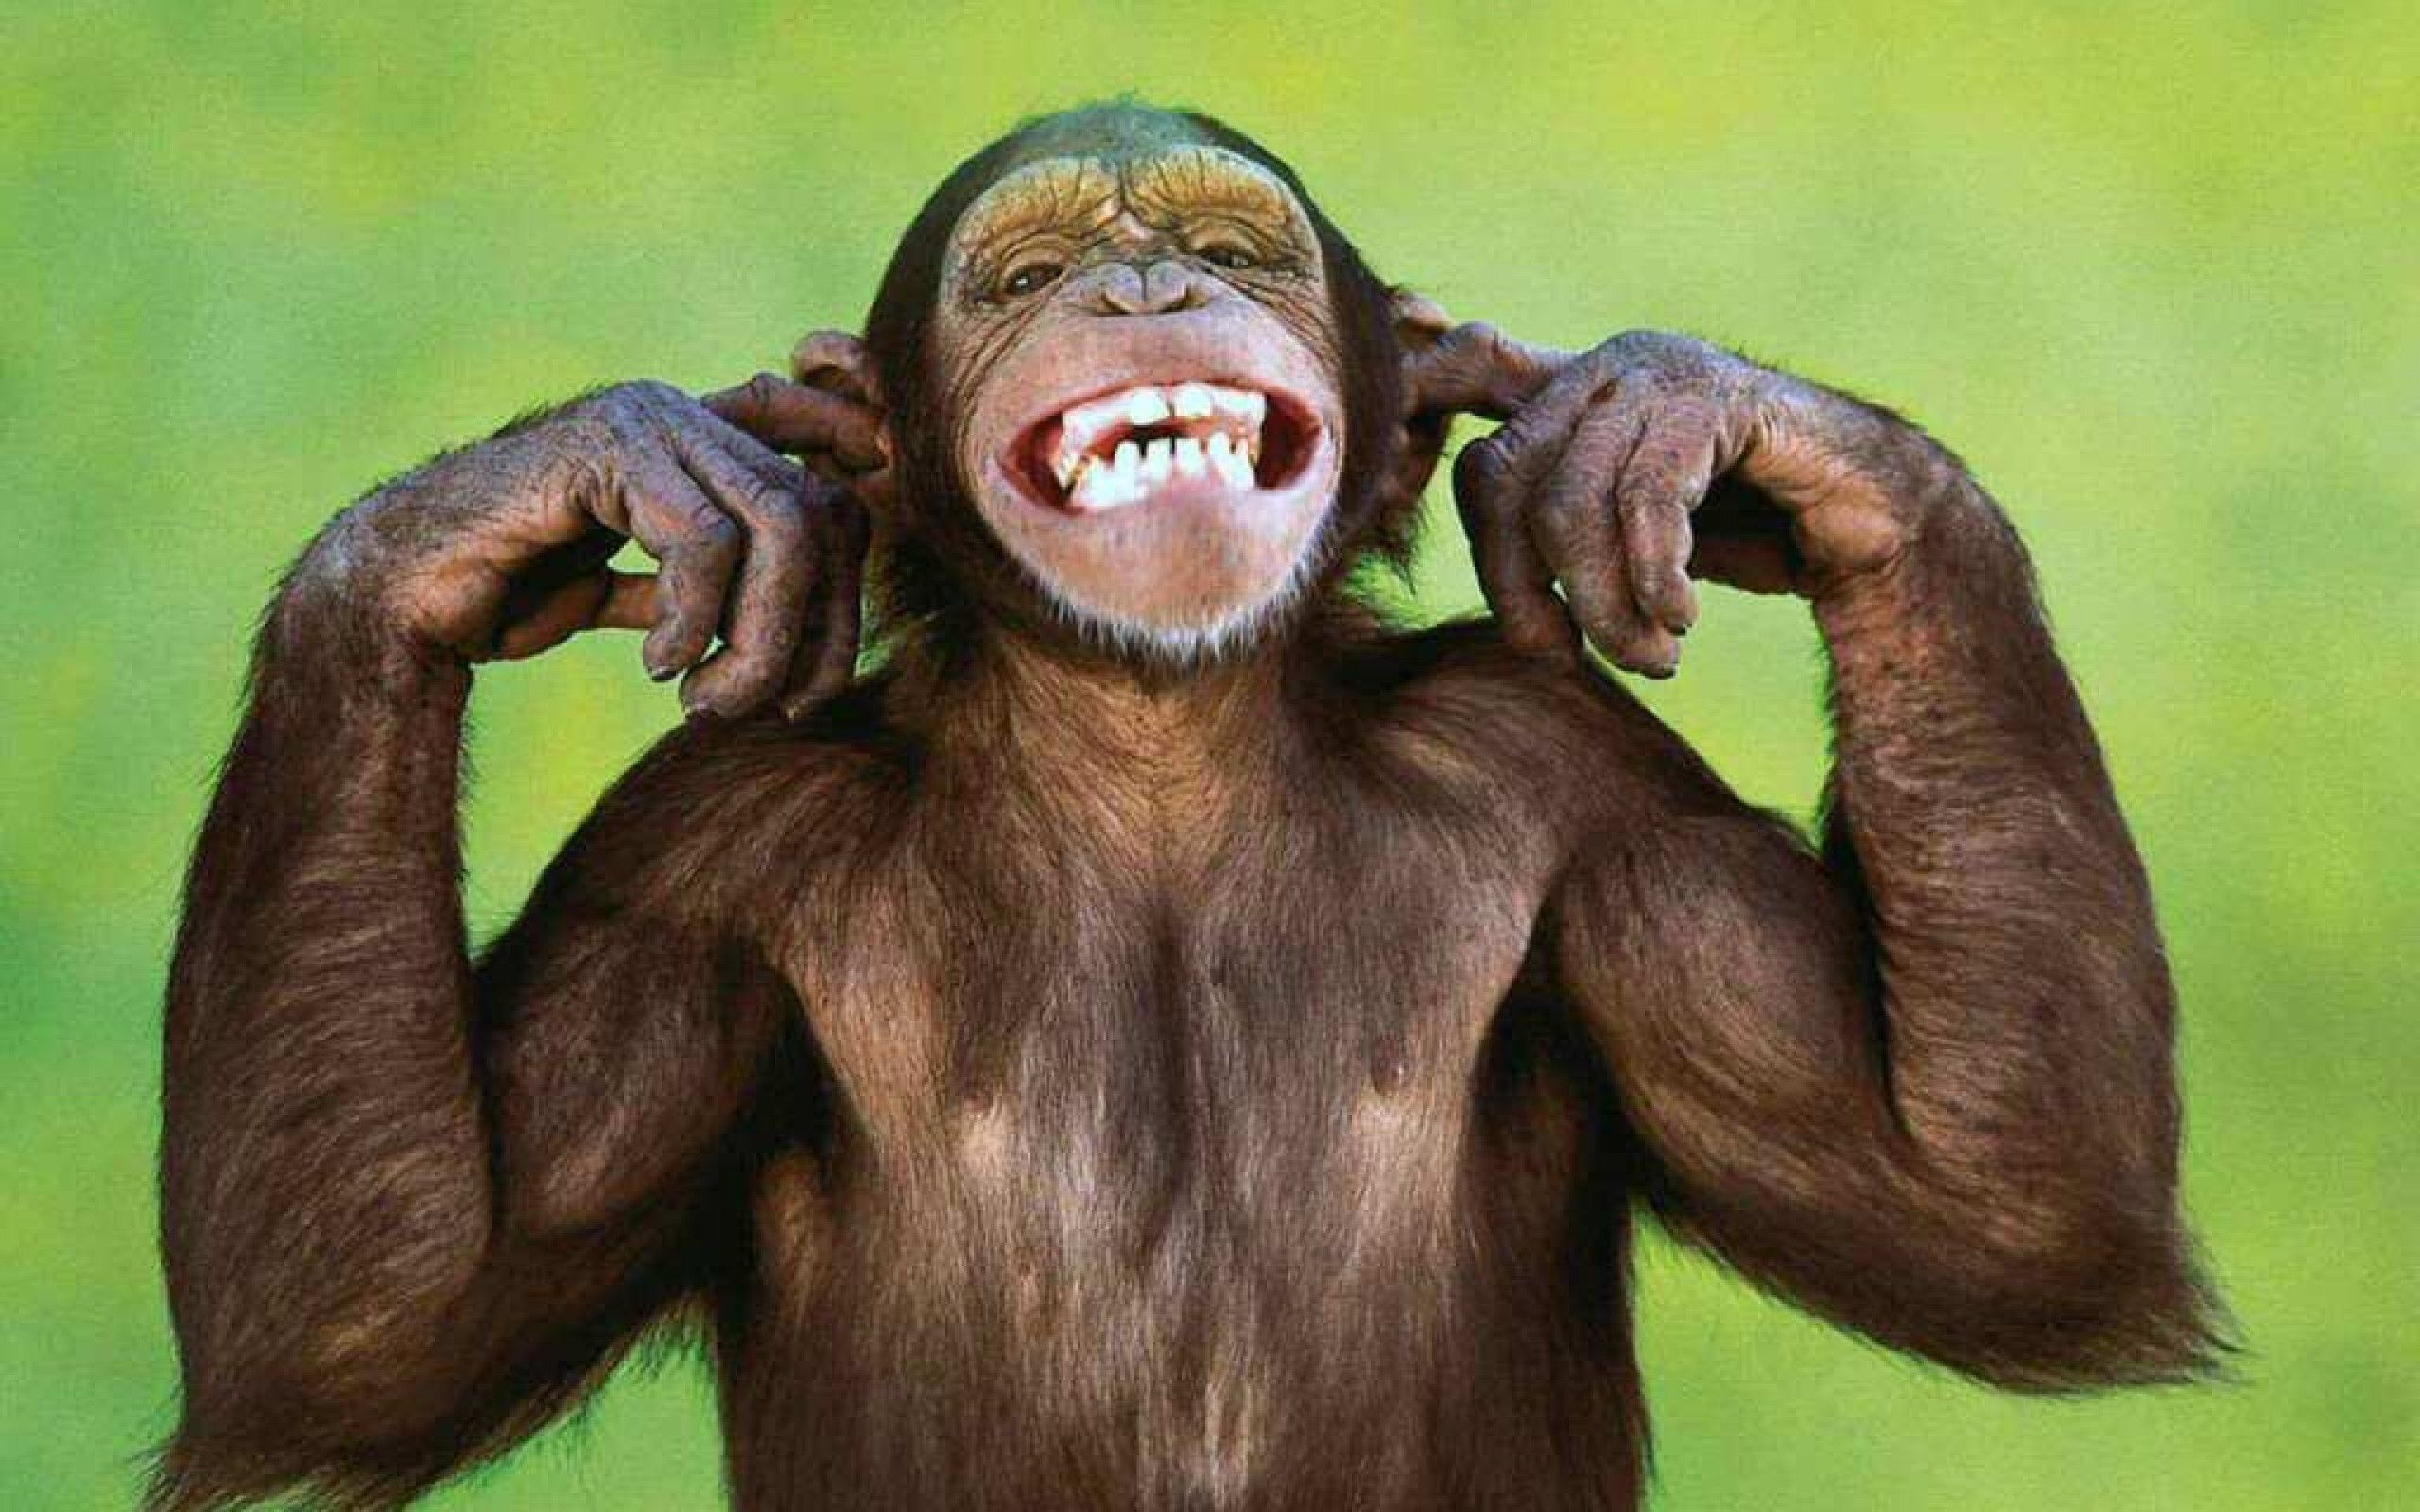 Funny Monkey Wallpapers Top Free Funny Monkey Backgrounds